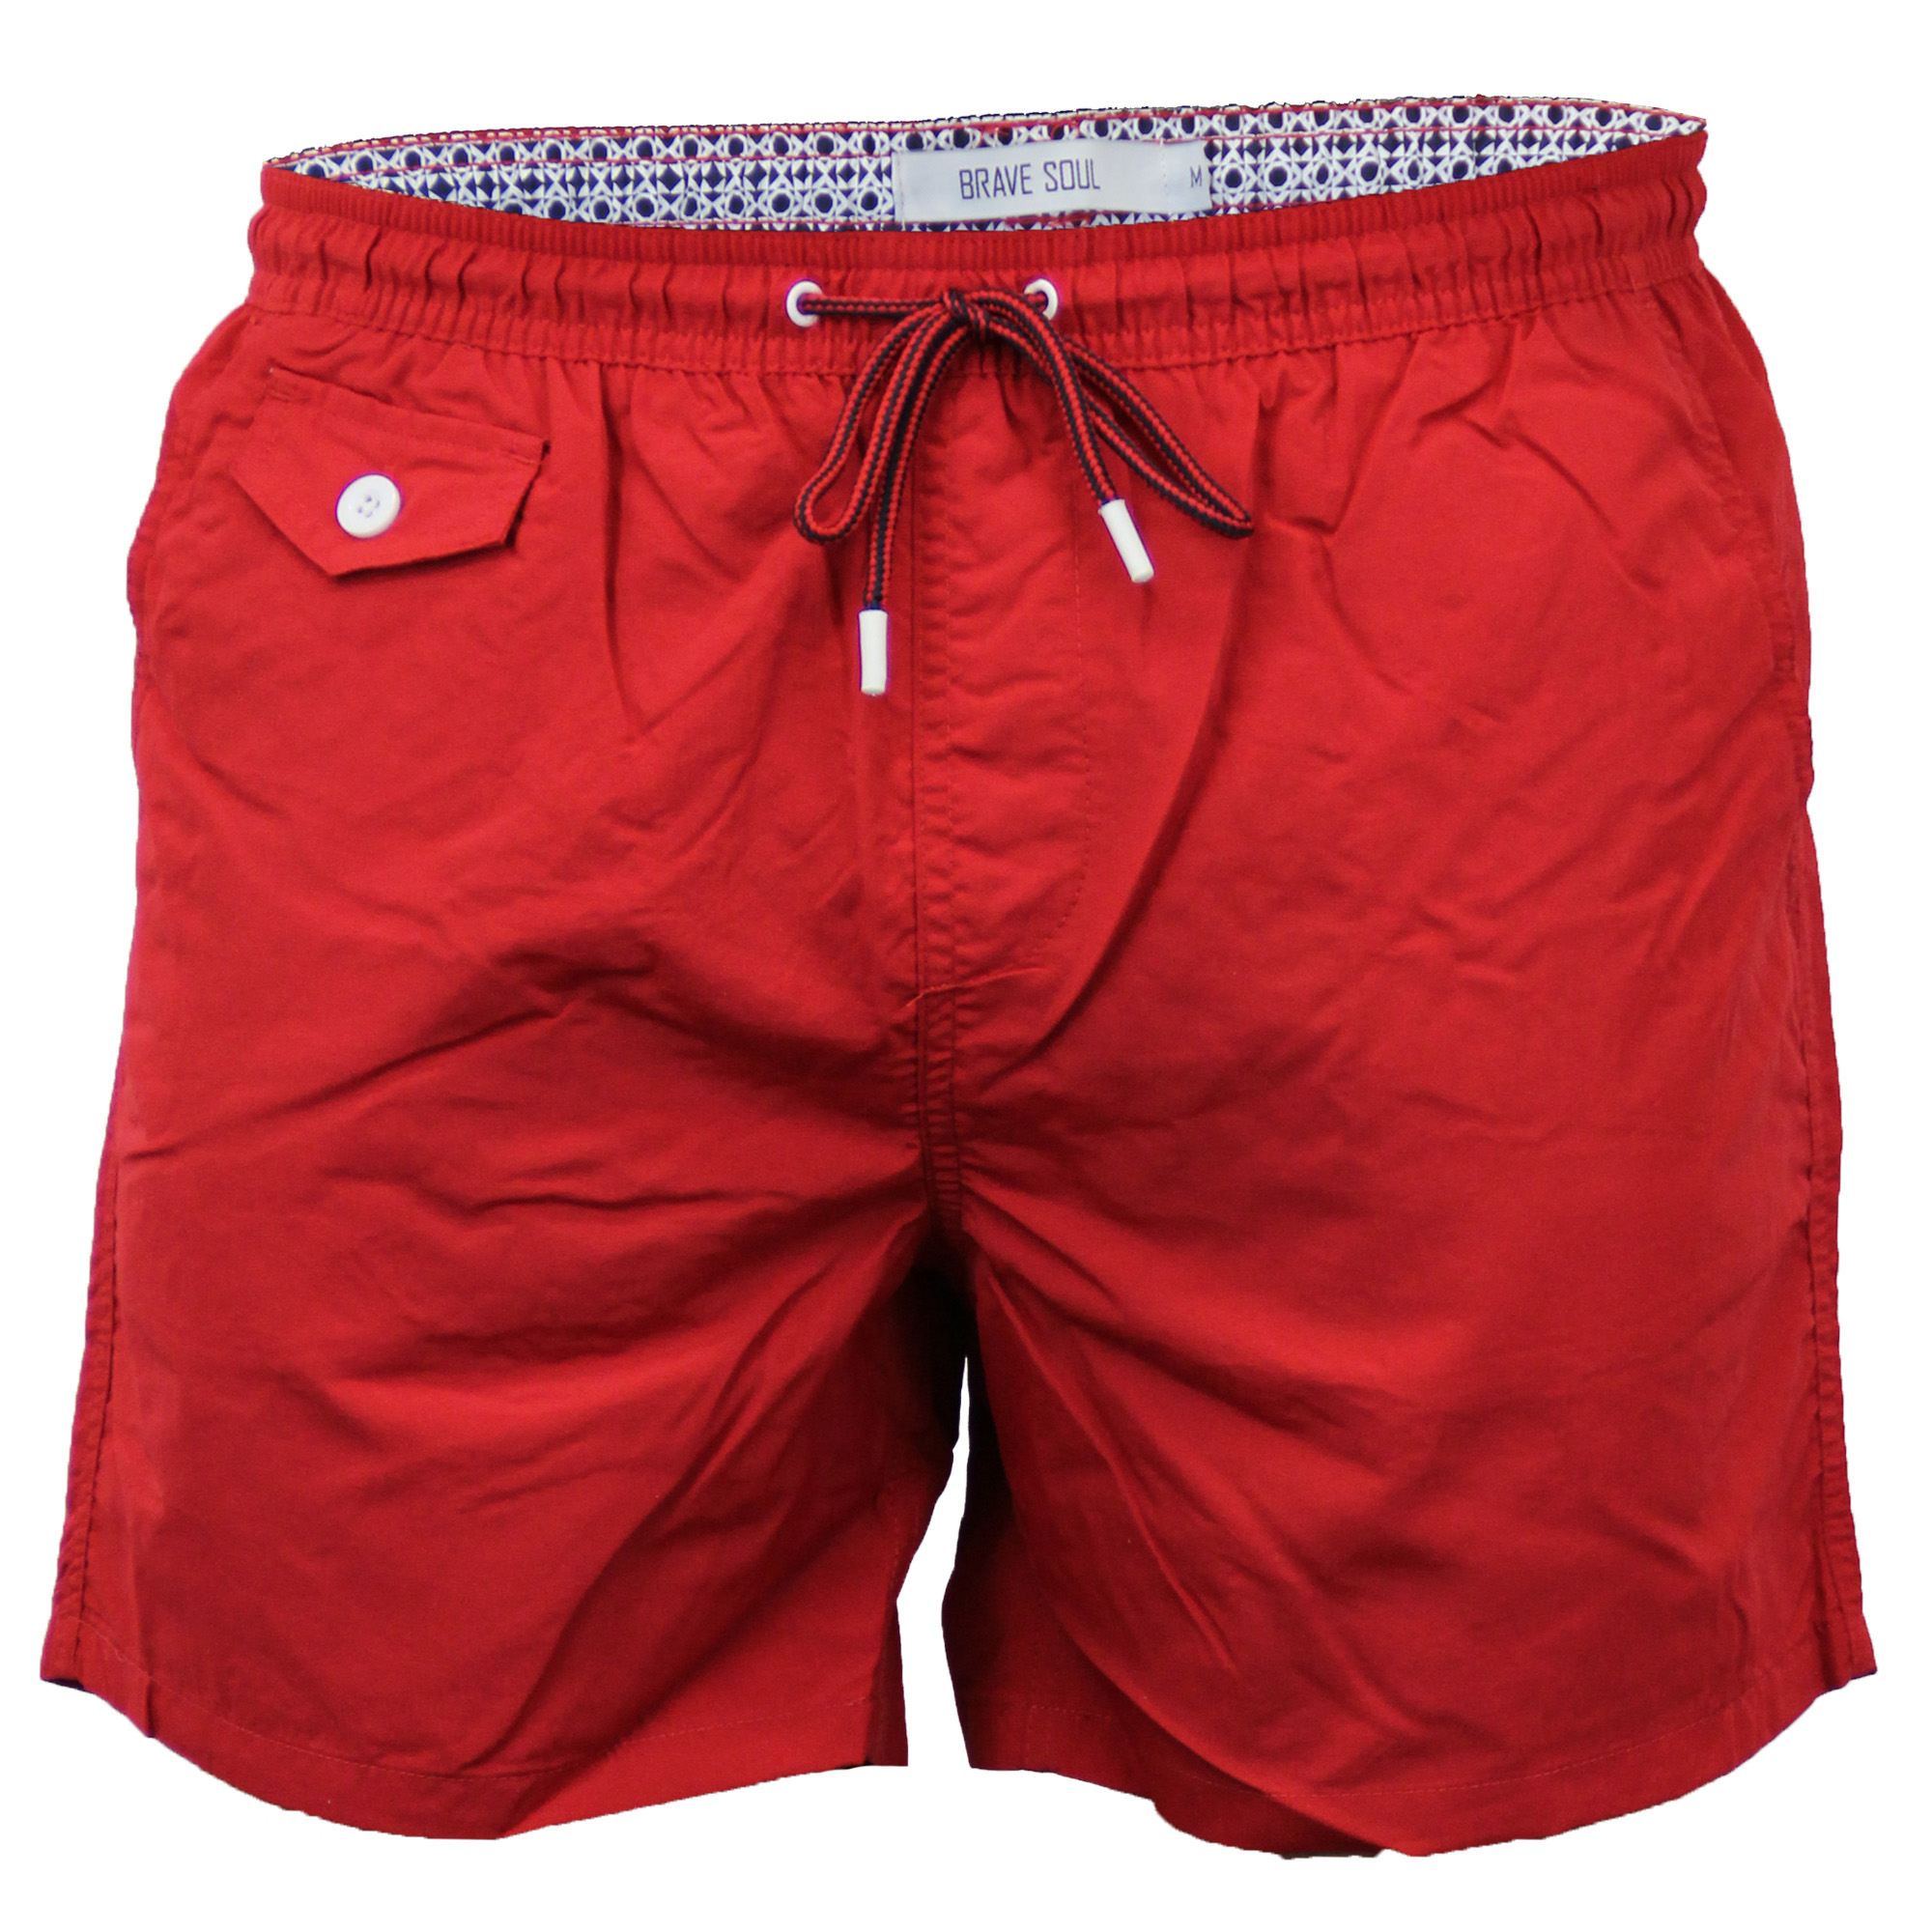 Free shipping BOTH ways on lined board shorts, from our vast selection of styles. Fast delivery, and 24/7/ real-person service with a smile. Click or call